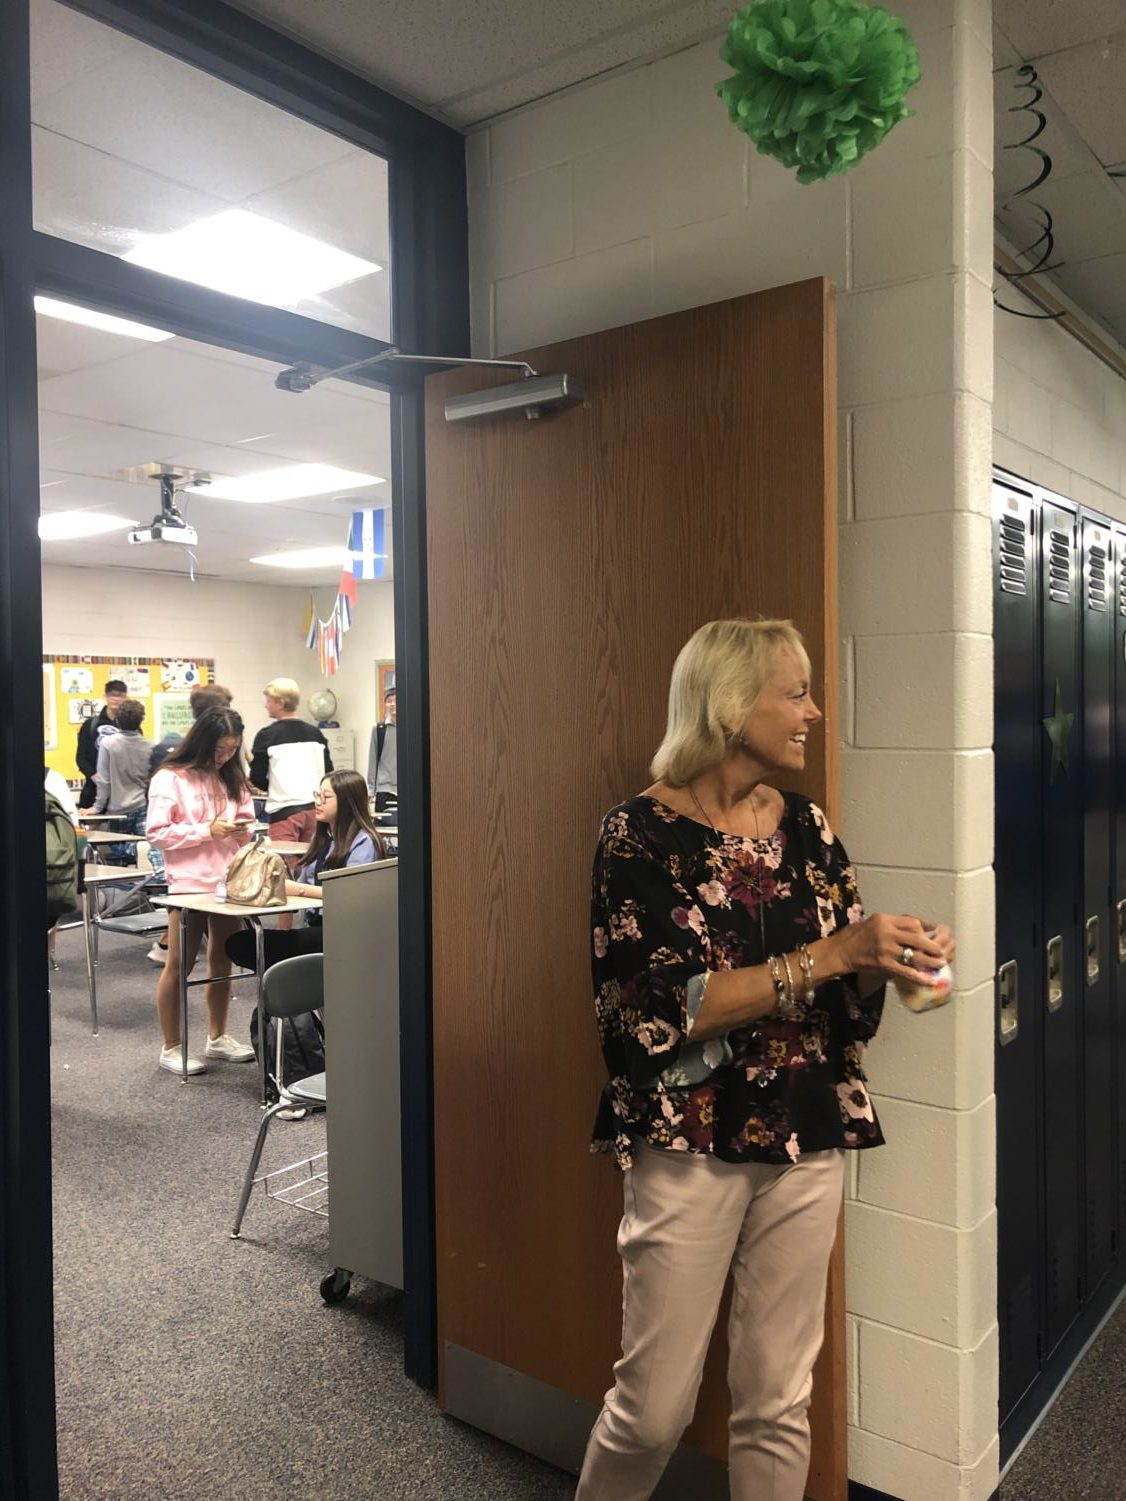 Ms. Schroeder stands outside a classroom, smiling